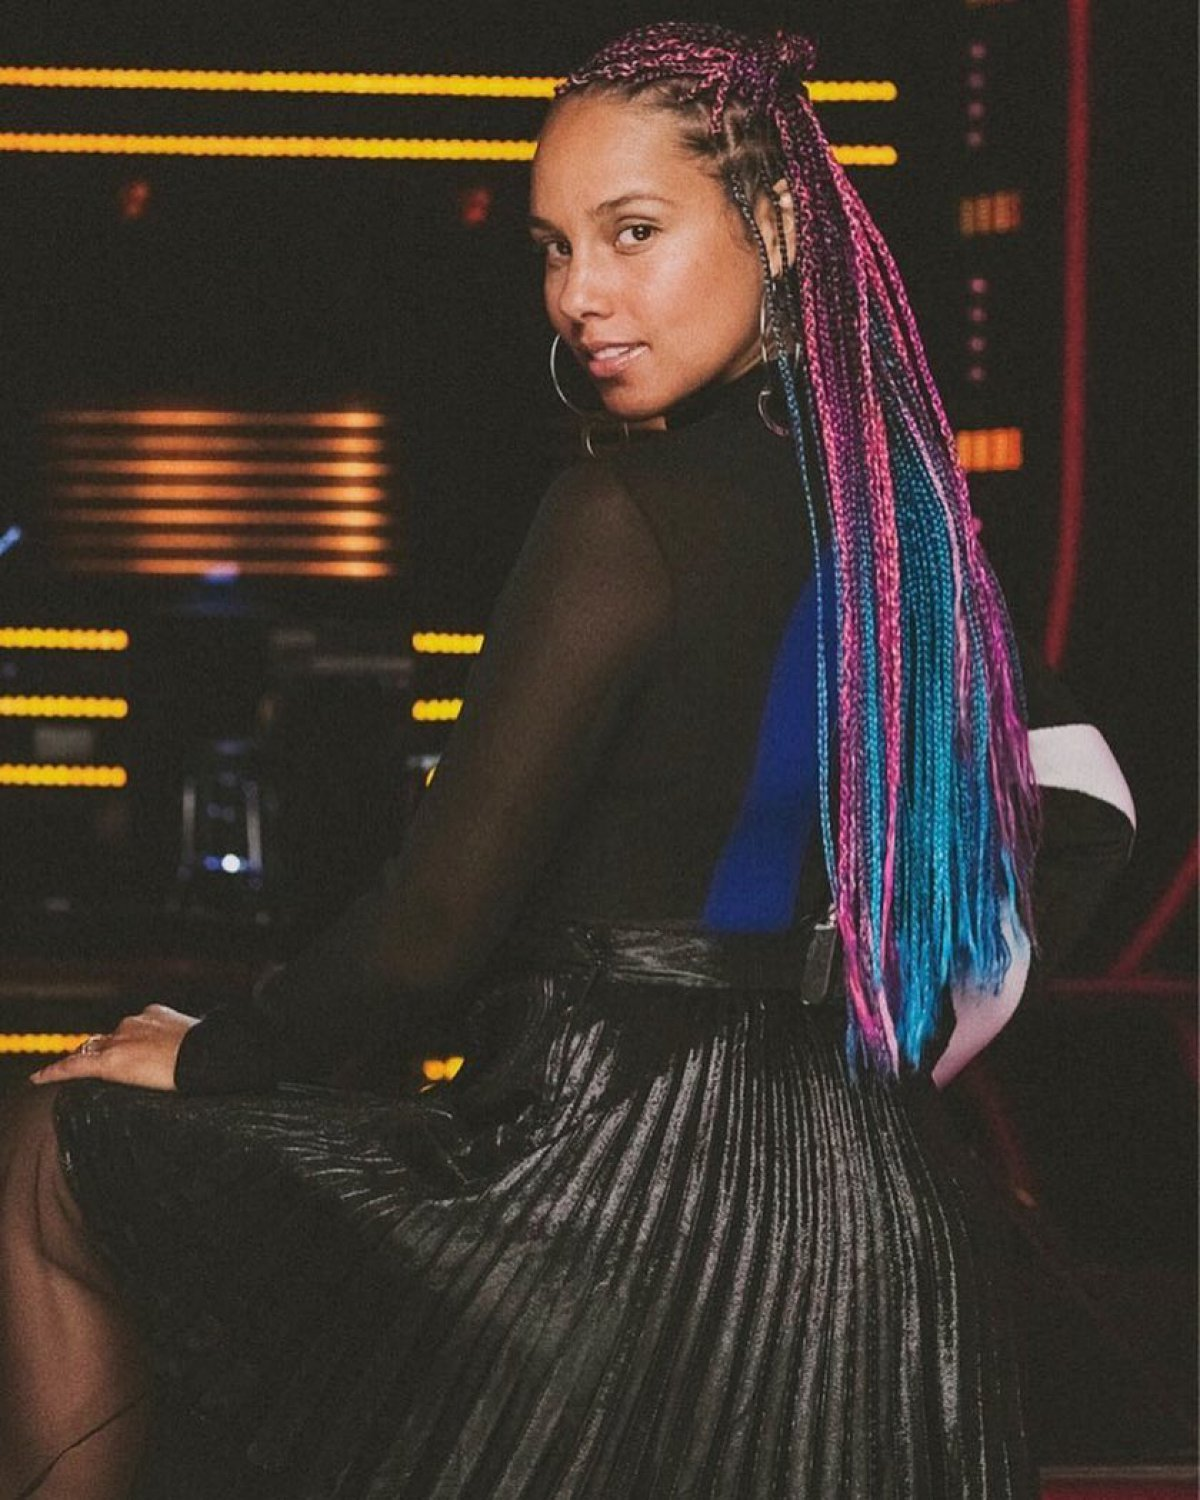 Alicia keys returning as coach for the voice season 14 with adam alicia keysinstagram nvjuhfo Images